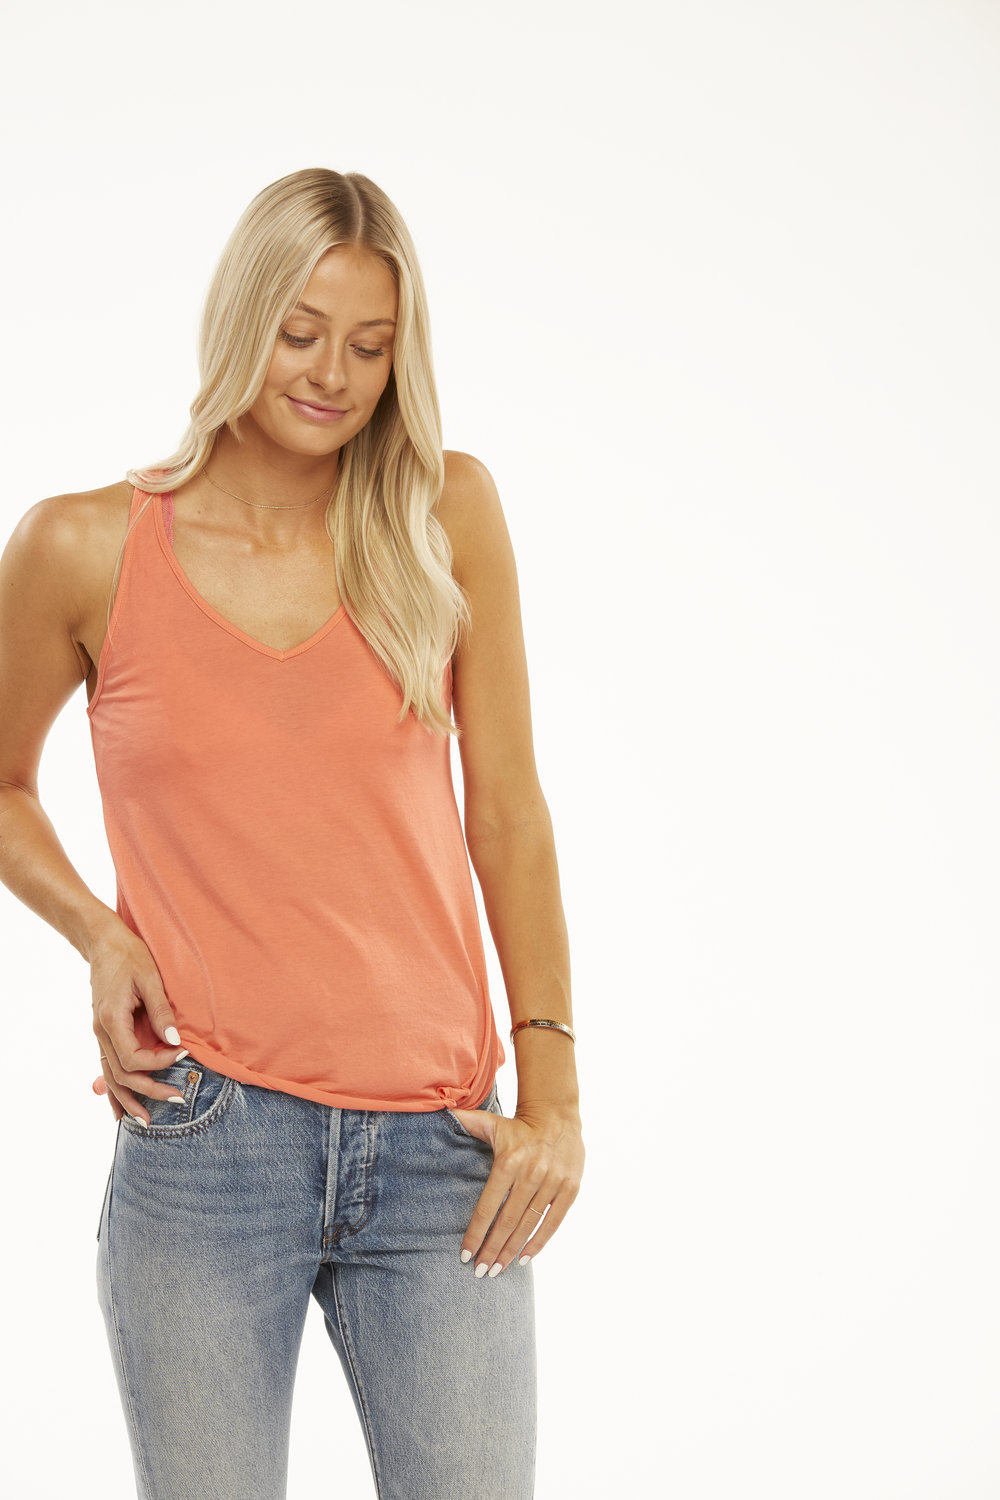 105MSF Friday Racerback Tank in Dubarry.jpg